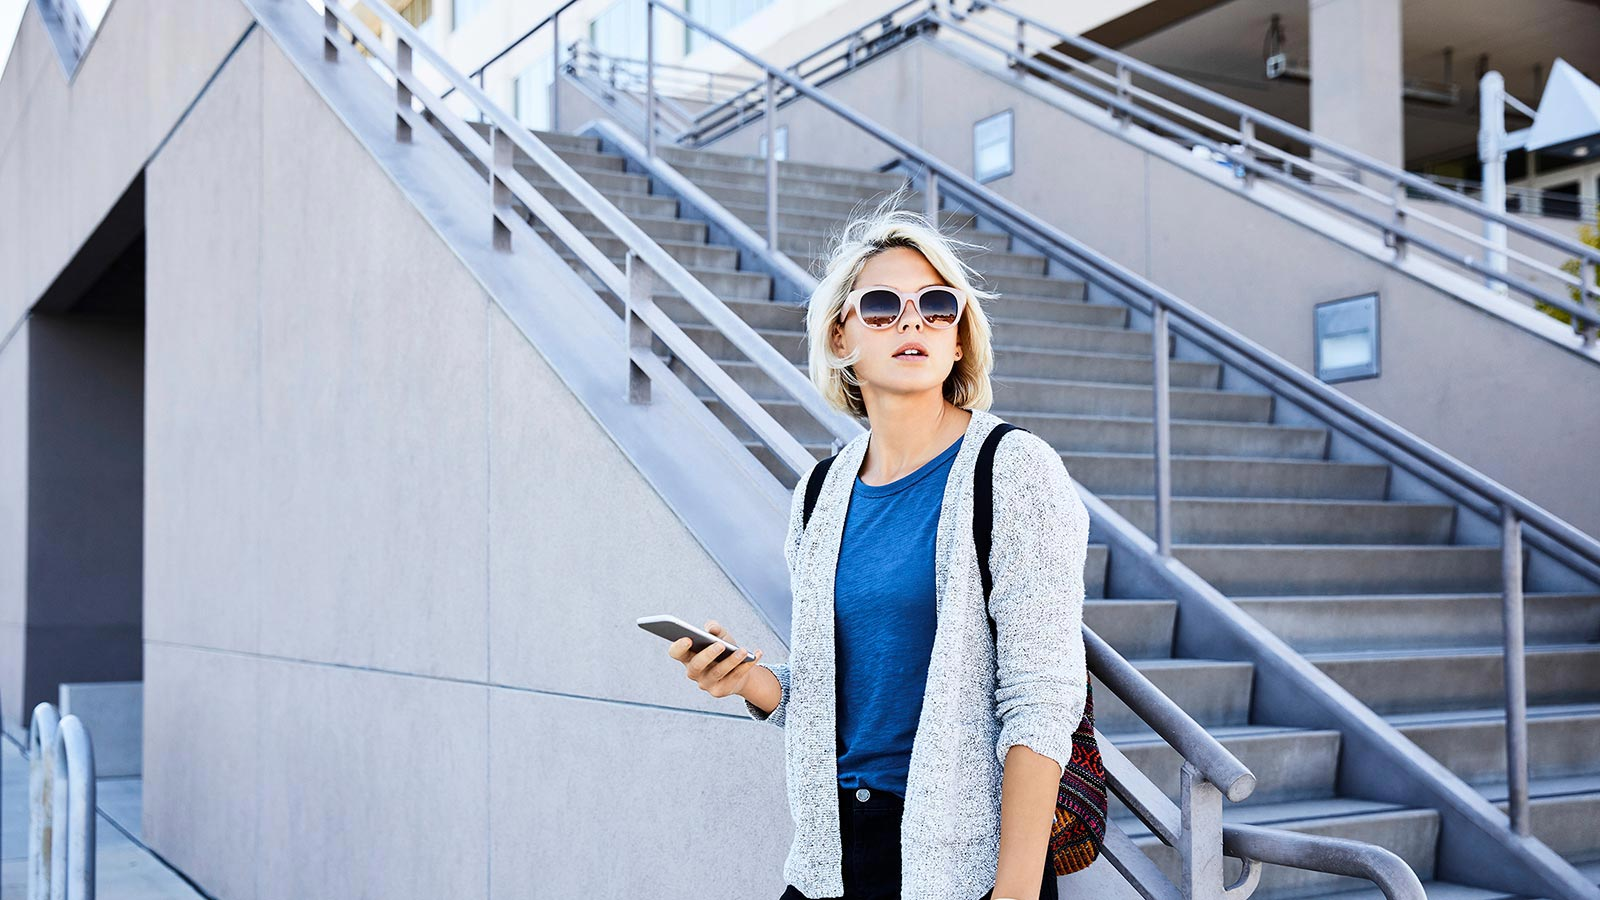 Woman holding a phone and waiting near a stair case.